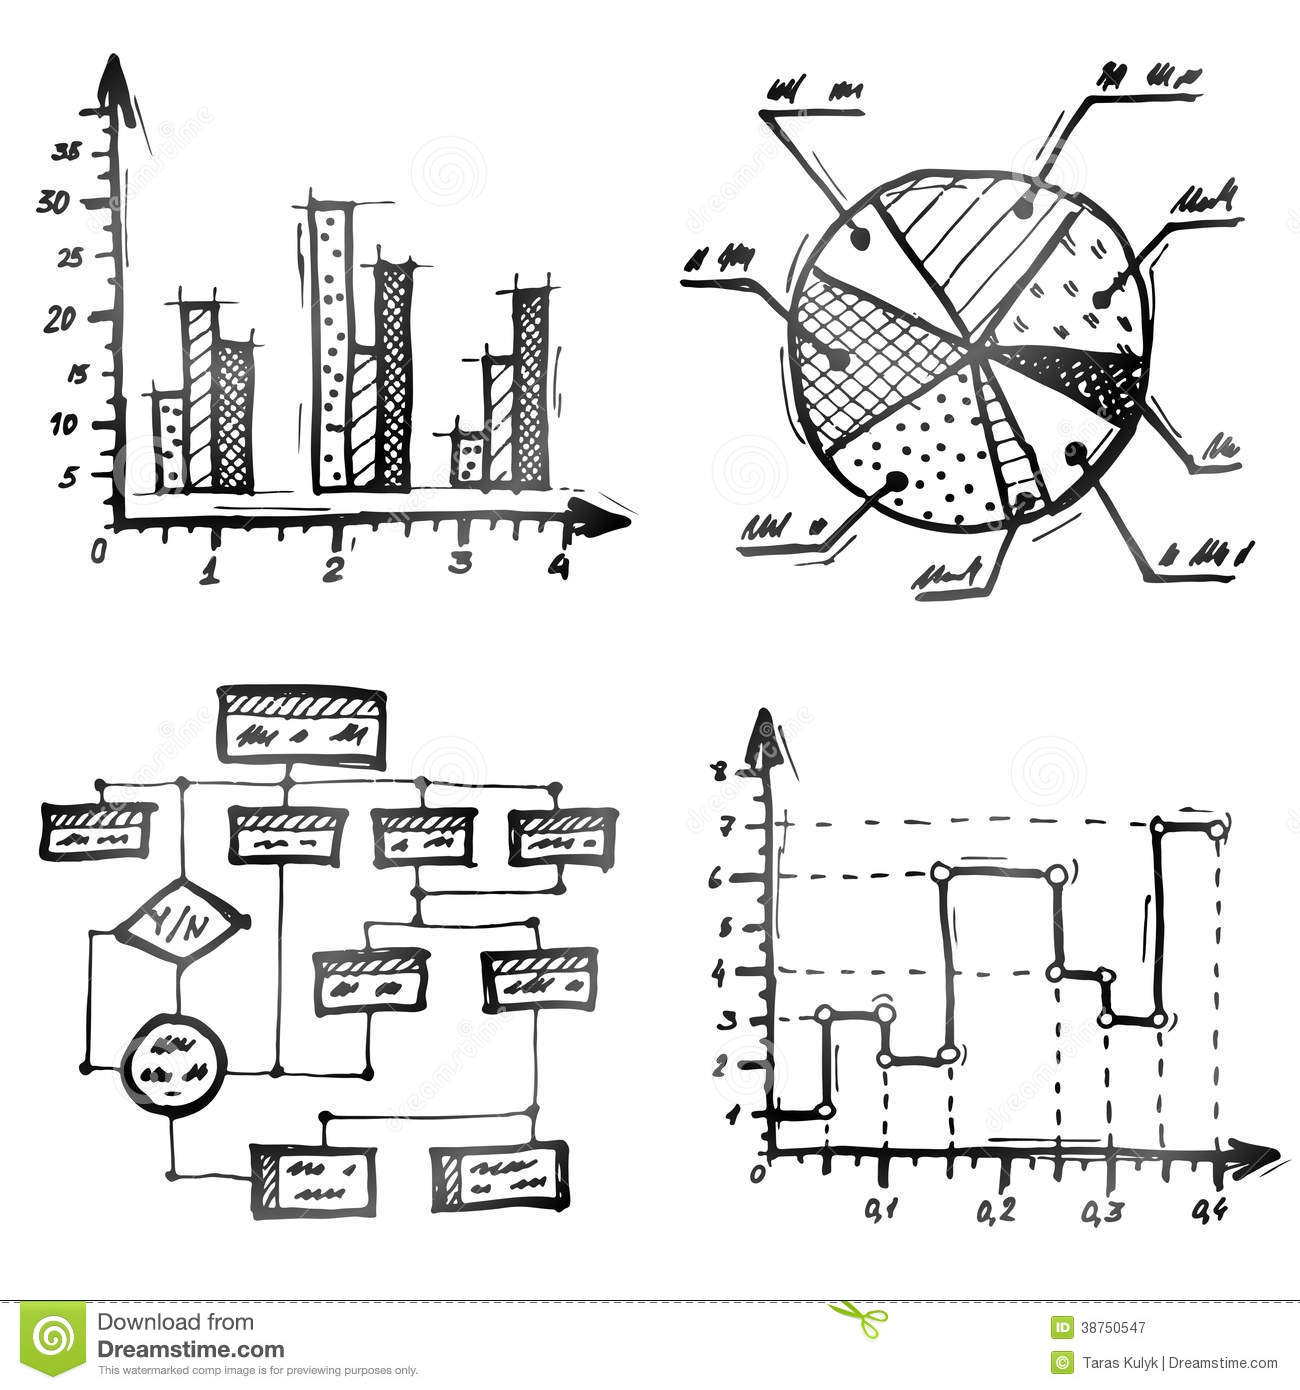 example of problem solving in instrumentation